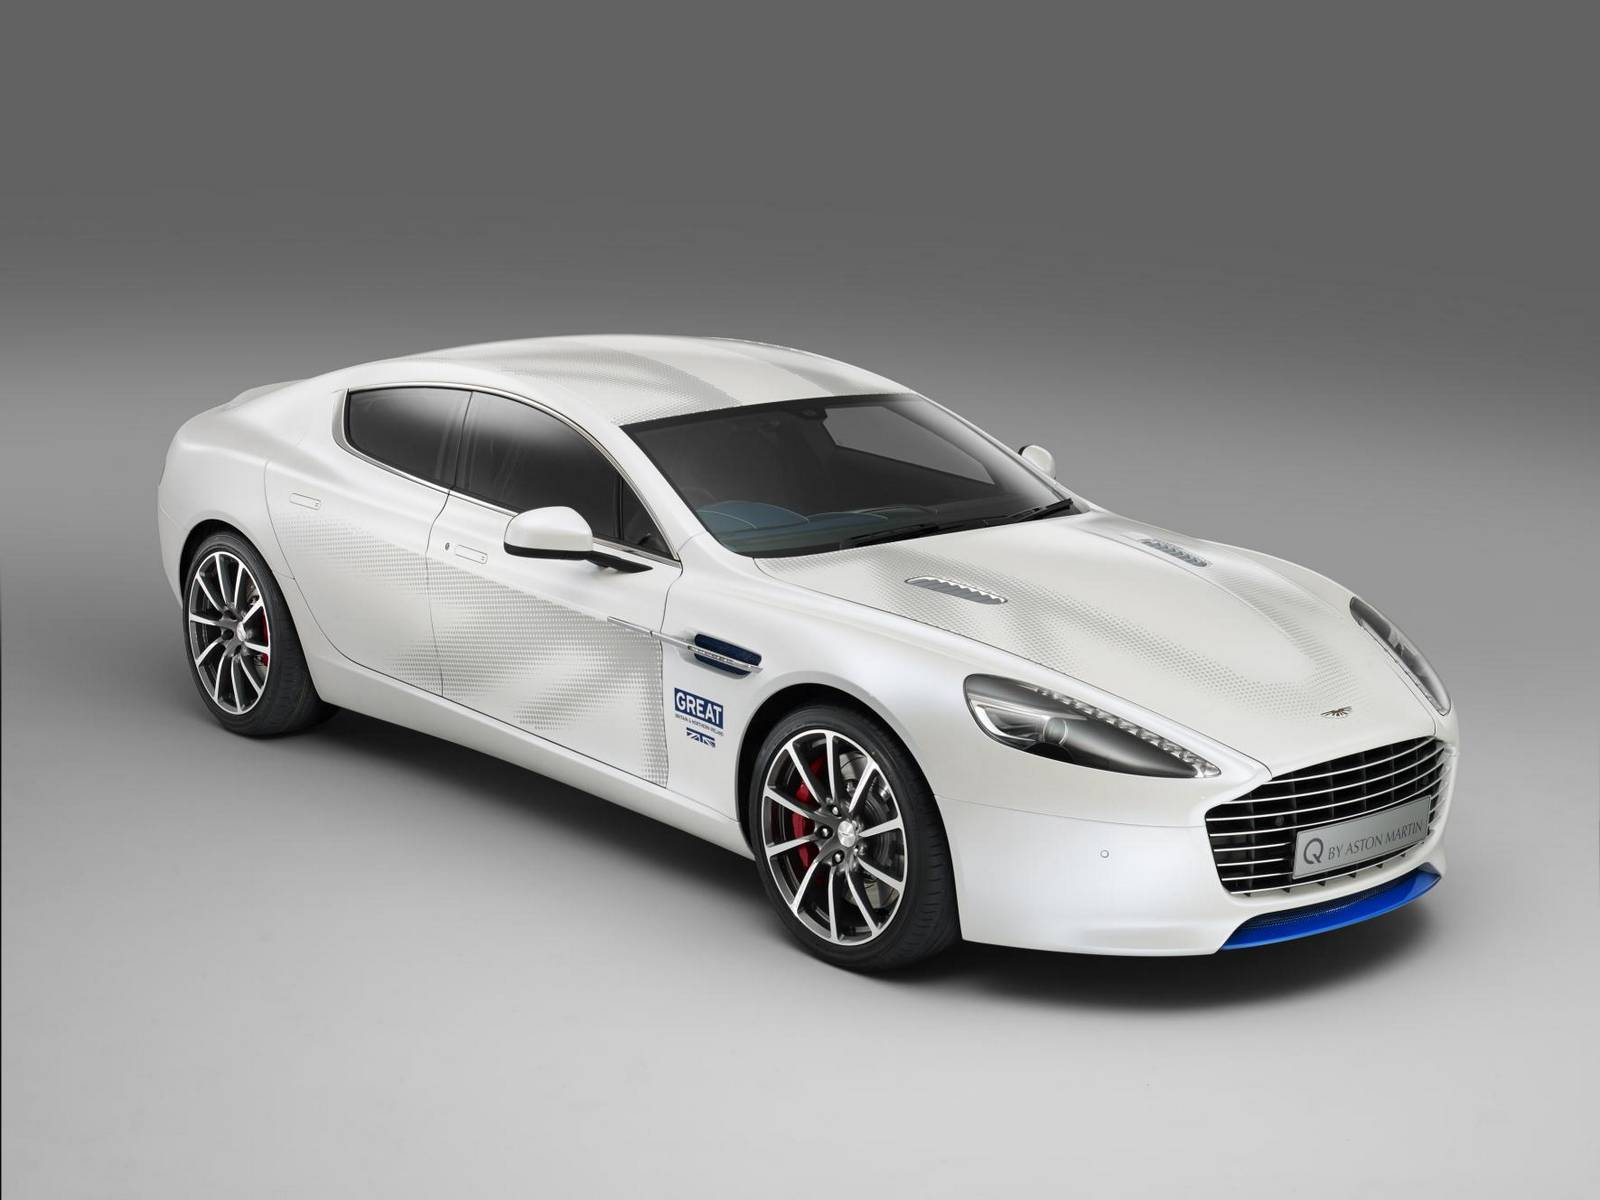 British Themed Q by Aston Martin Rapide S Revealed GTspirit